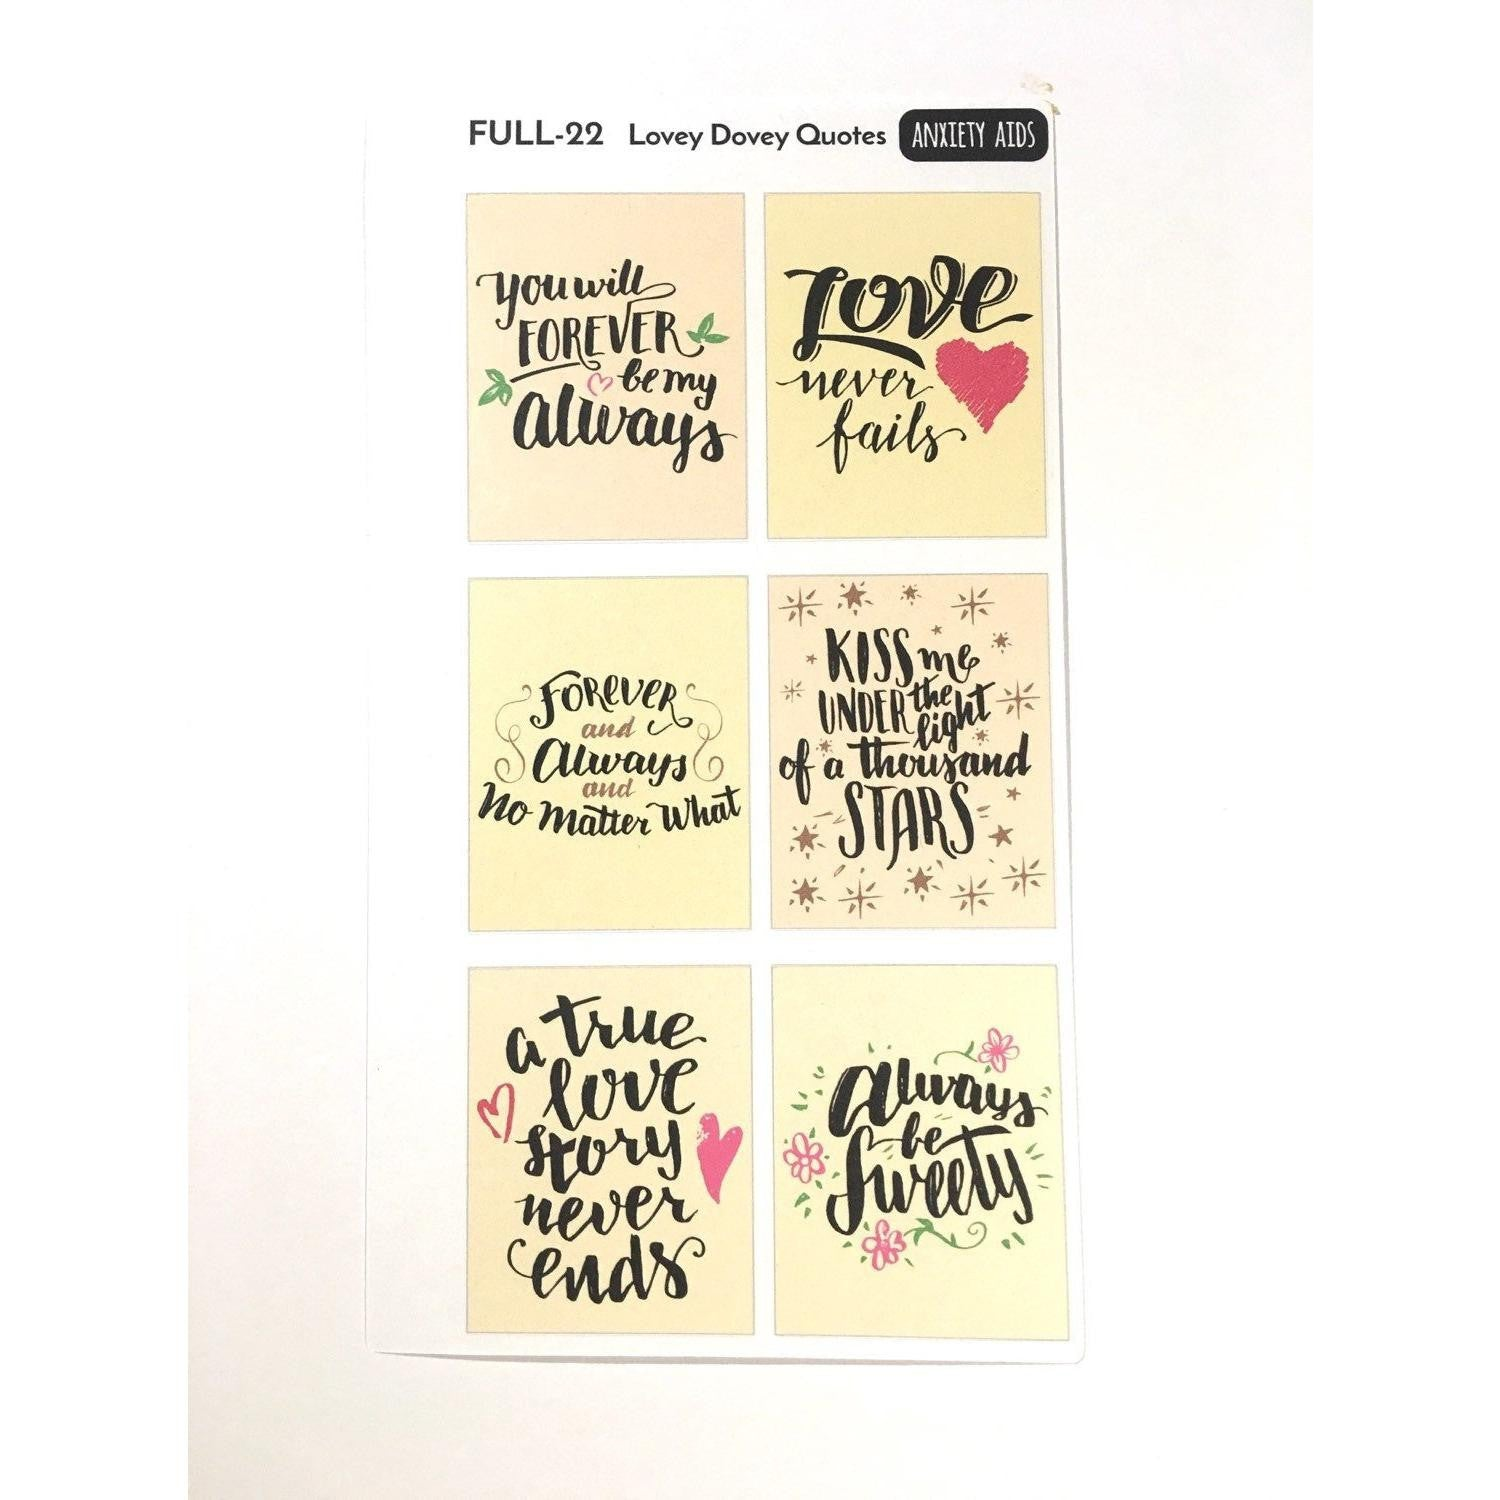 FULL-21 lovey dovey quote boxes planner stickers full boxes  Anxiety Aids Anxiety Aids